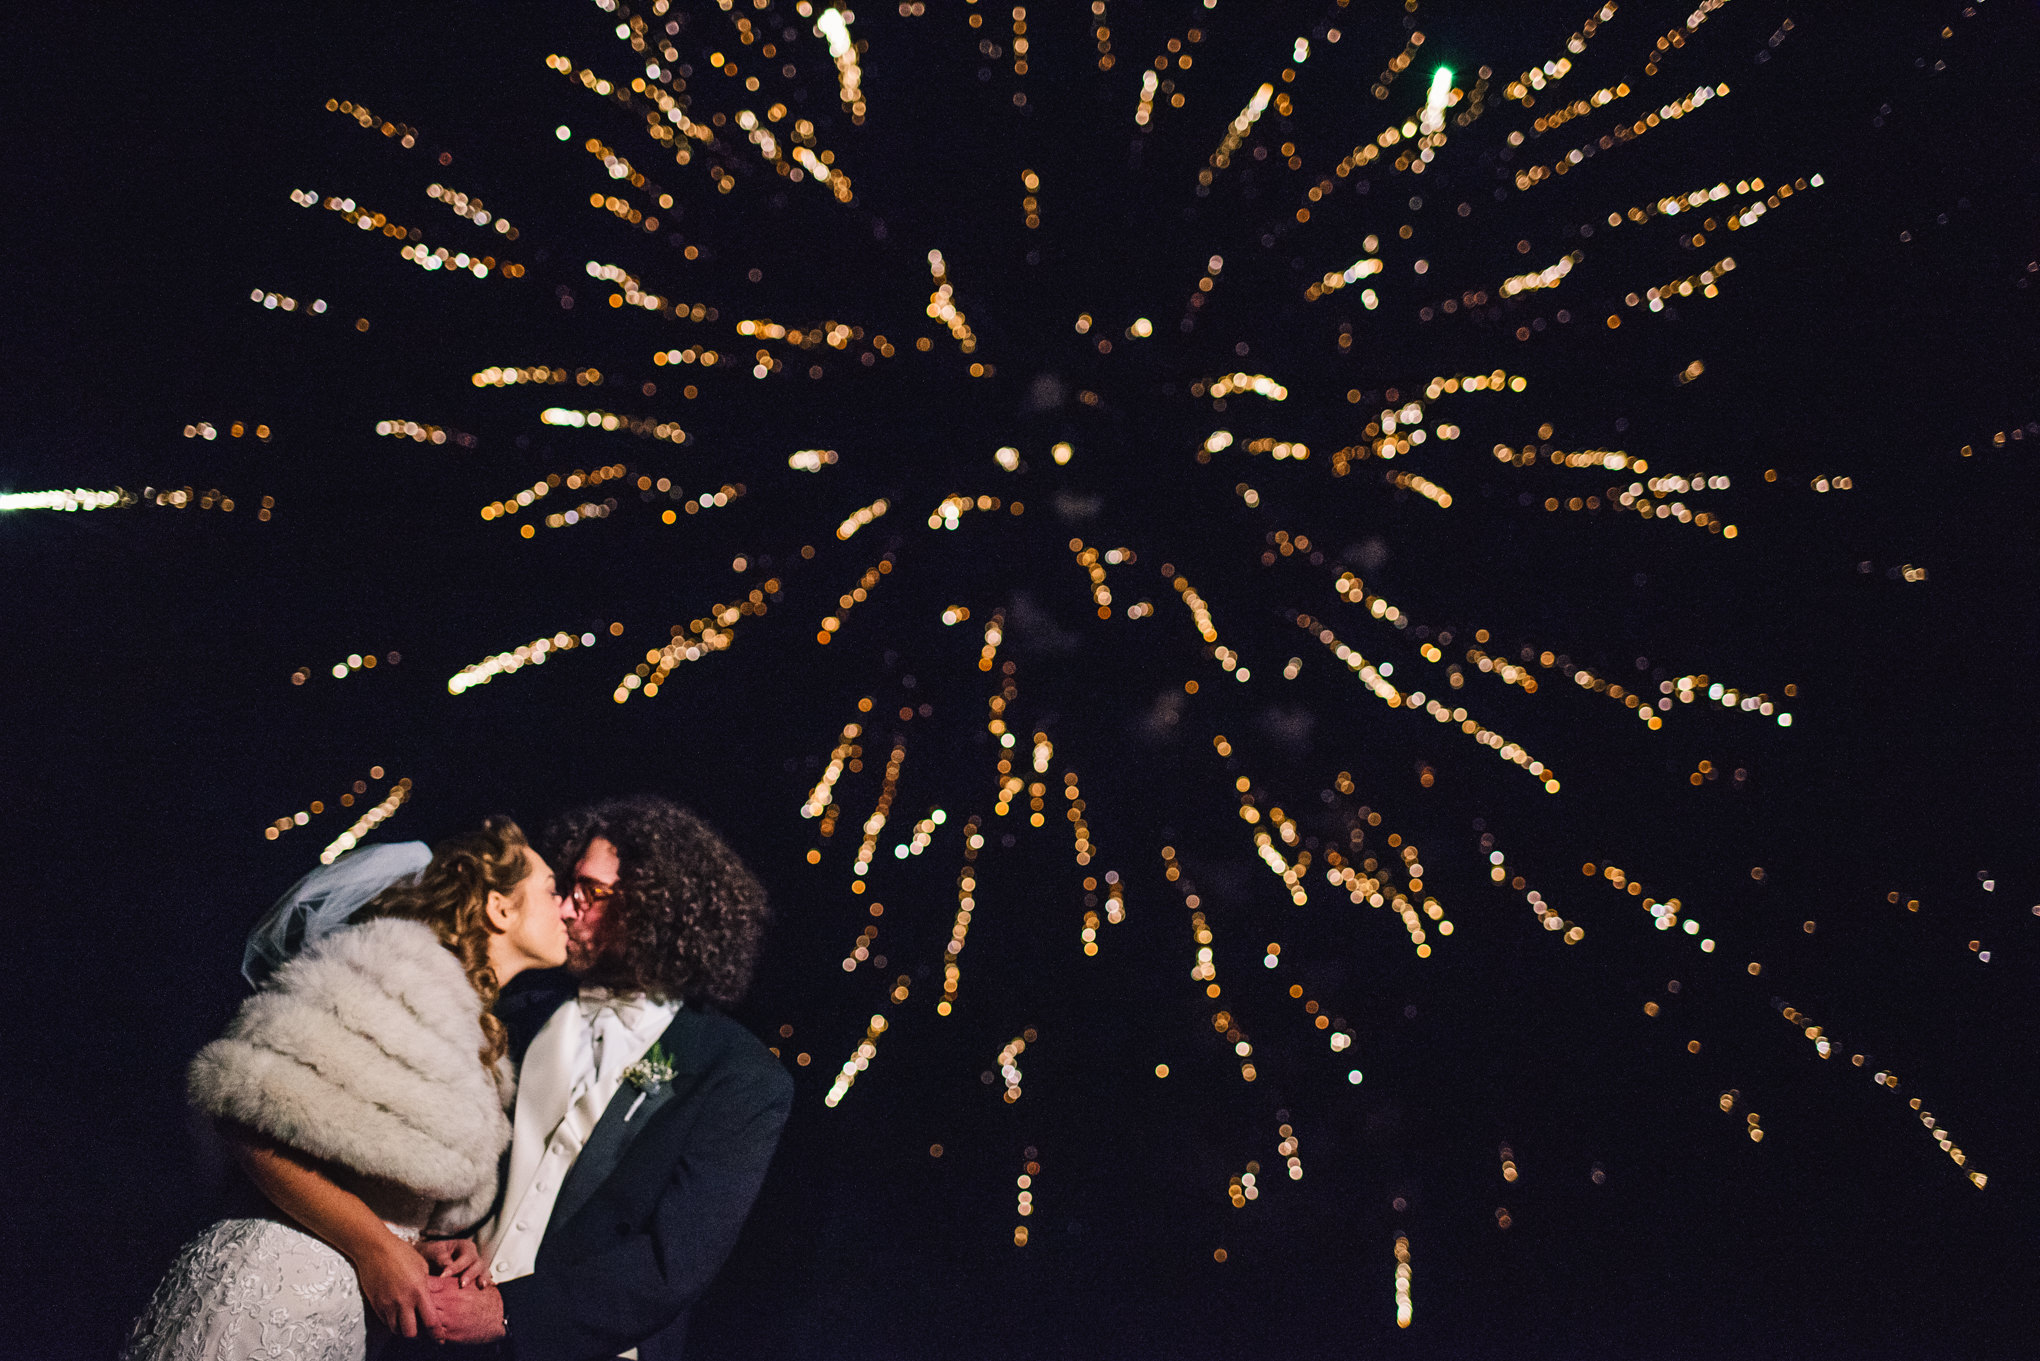 Couple and fireworks